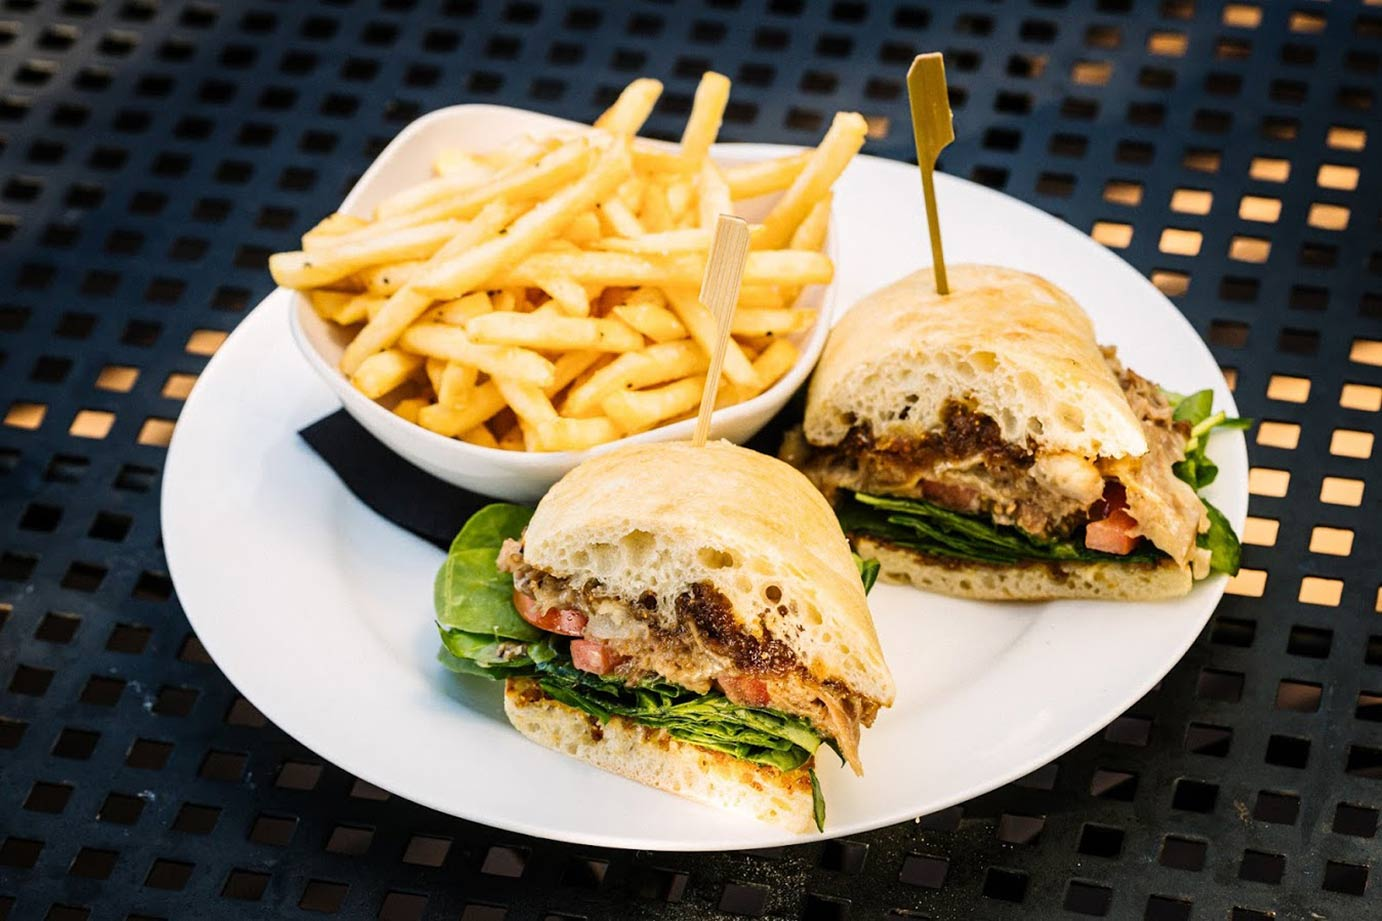 Sandwich burger with french fries